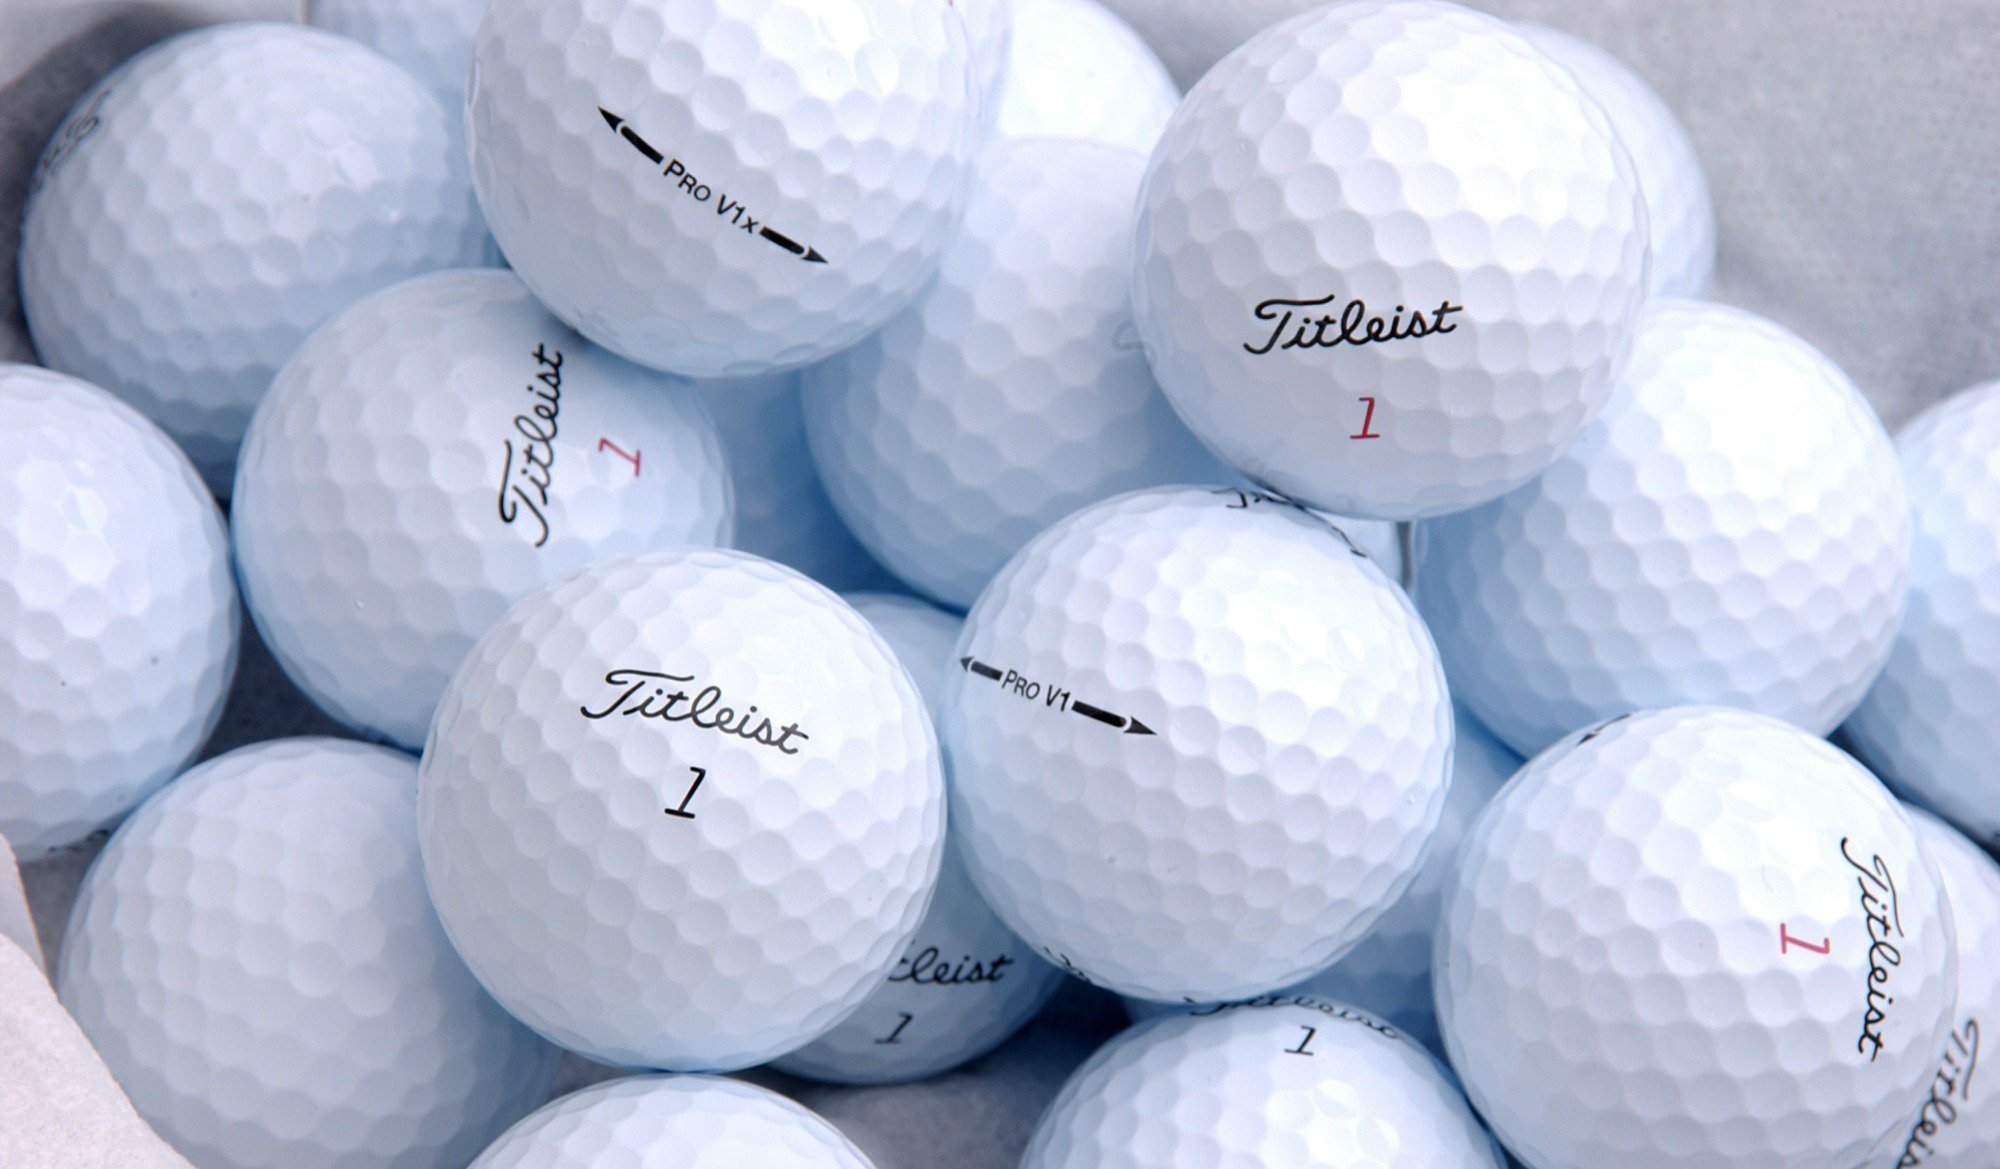 The very best golf balls out there